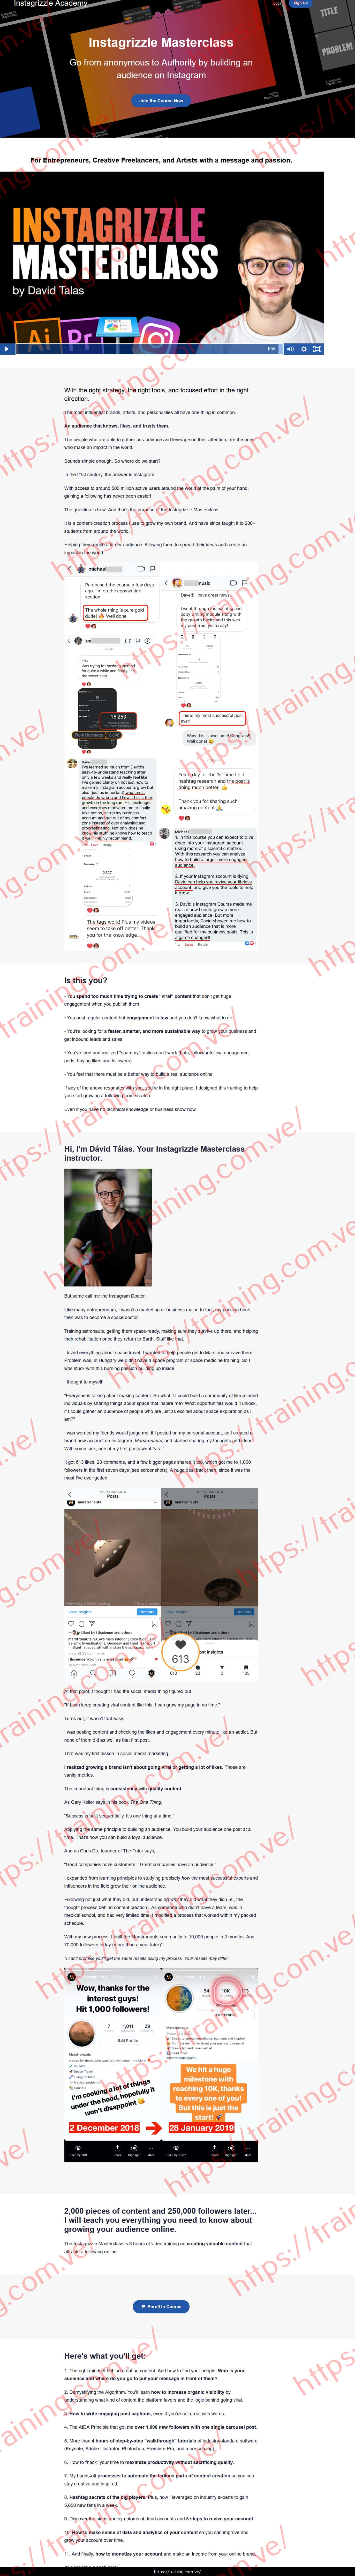 Instagrizzle Masterclass by David Talas Sales page